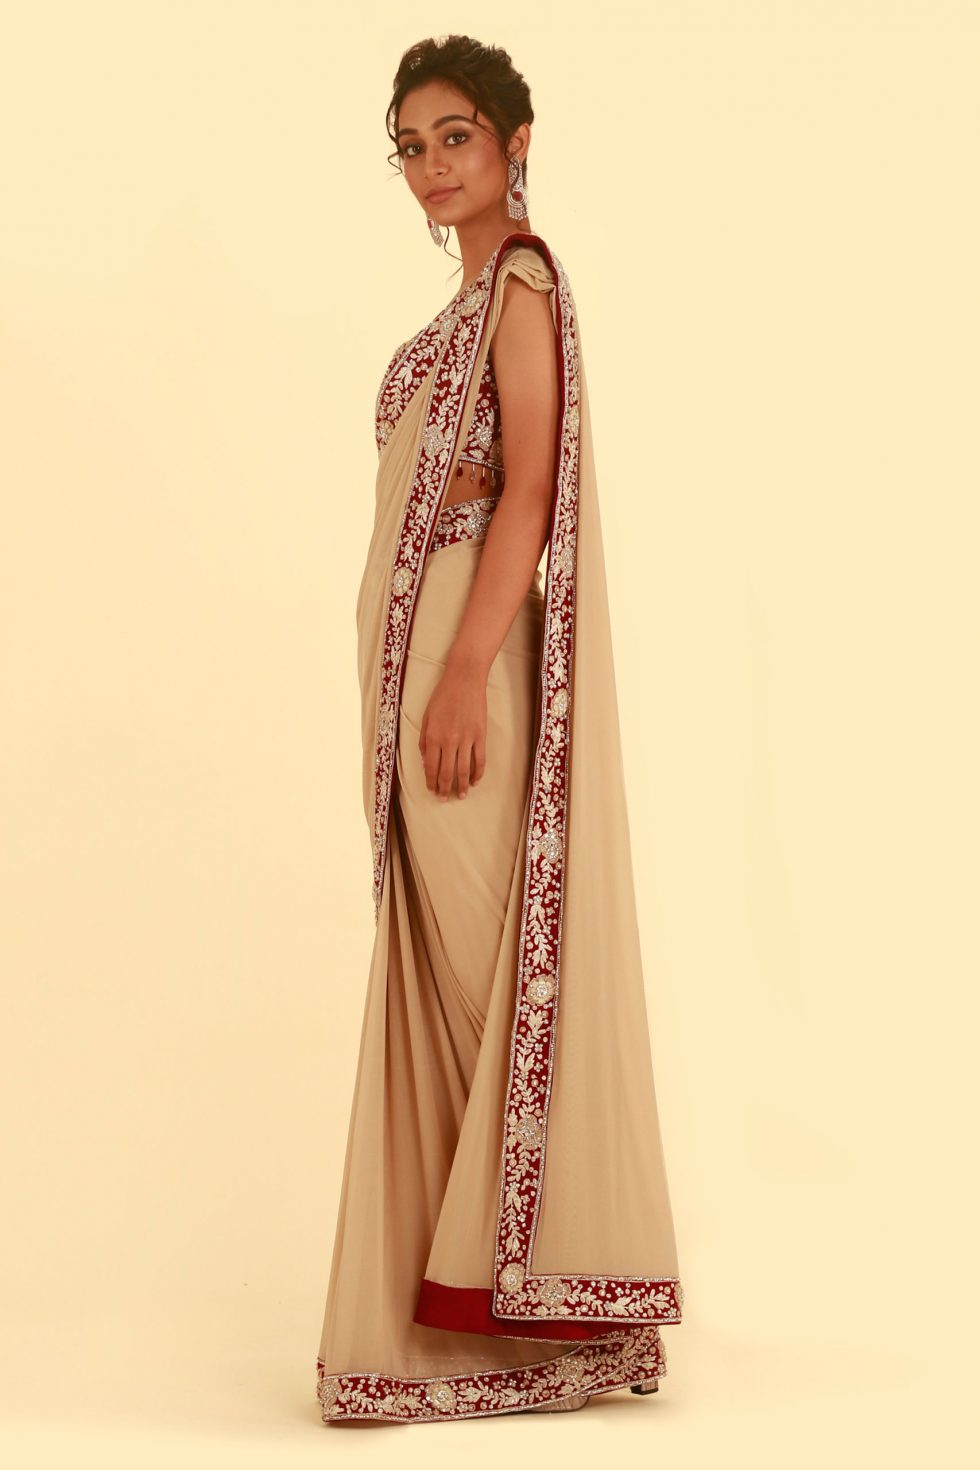 Beige gold saree with contrast Red maroon choli and border with silver gold details and tassels